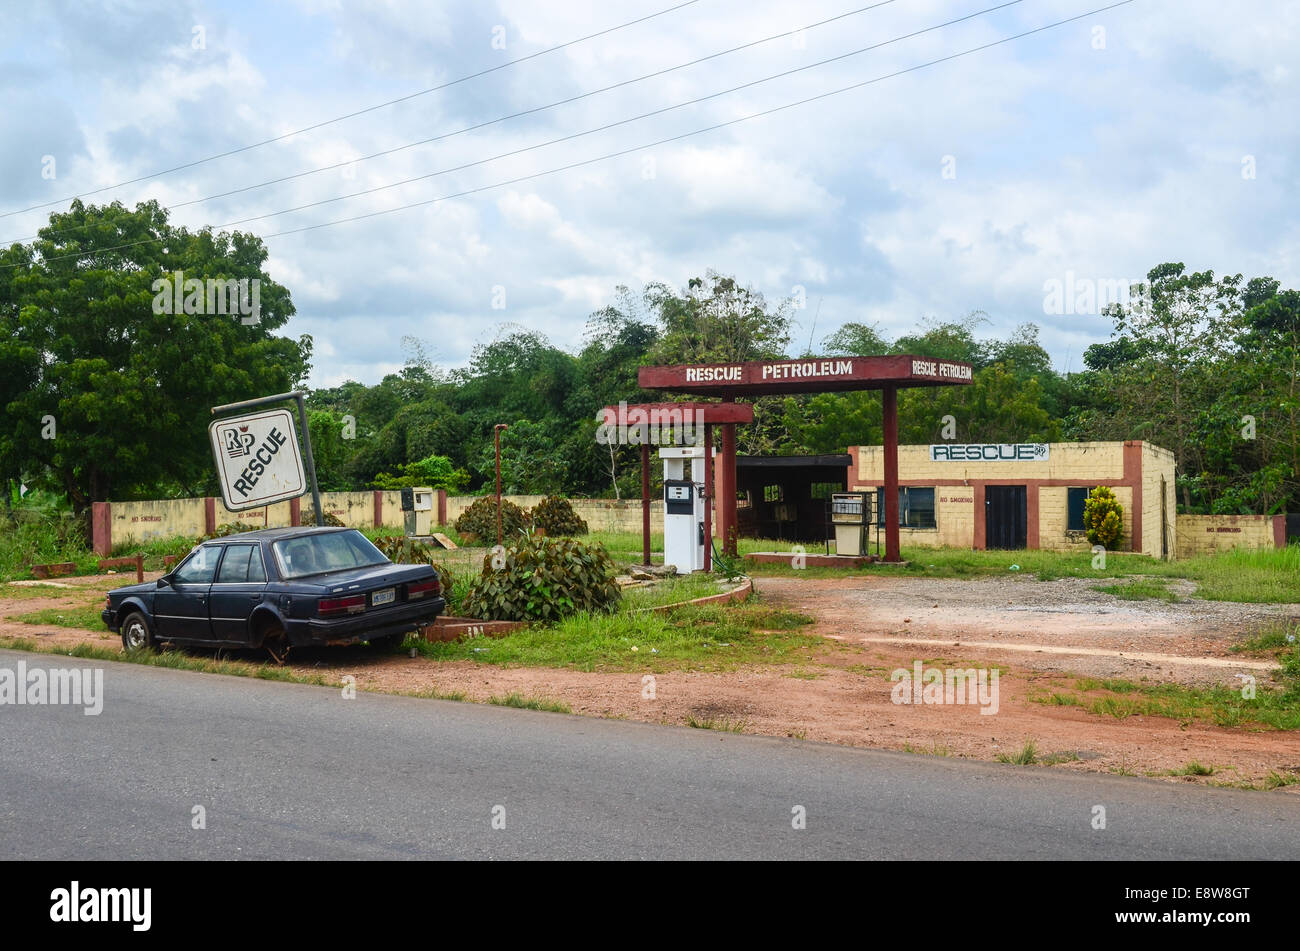 An abandoned gas station in south-west Nigeria reading 'RESCUE PETROLEUM' and a car wreck - Stock Image